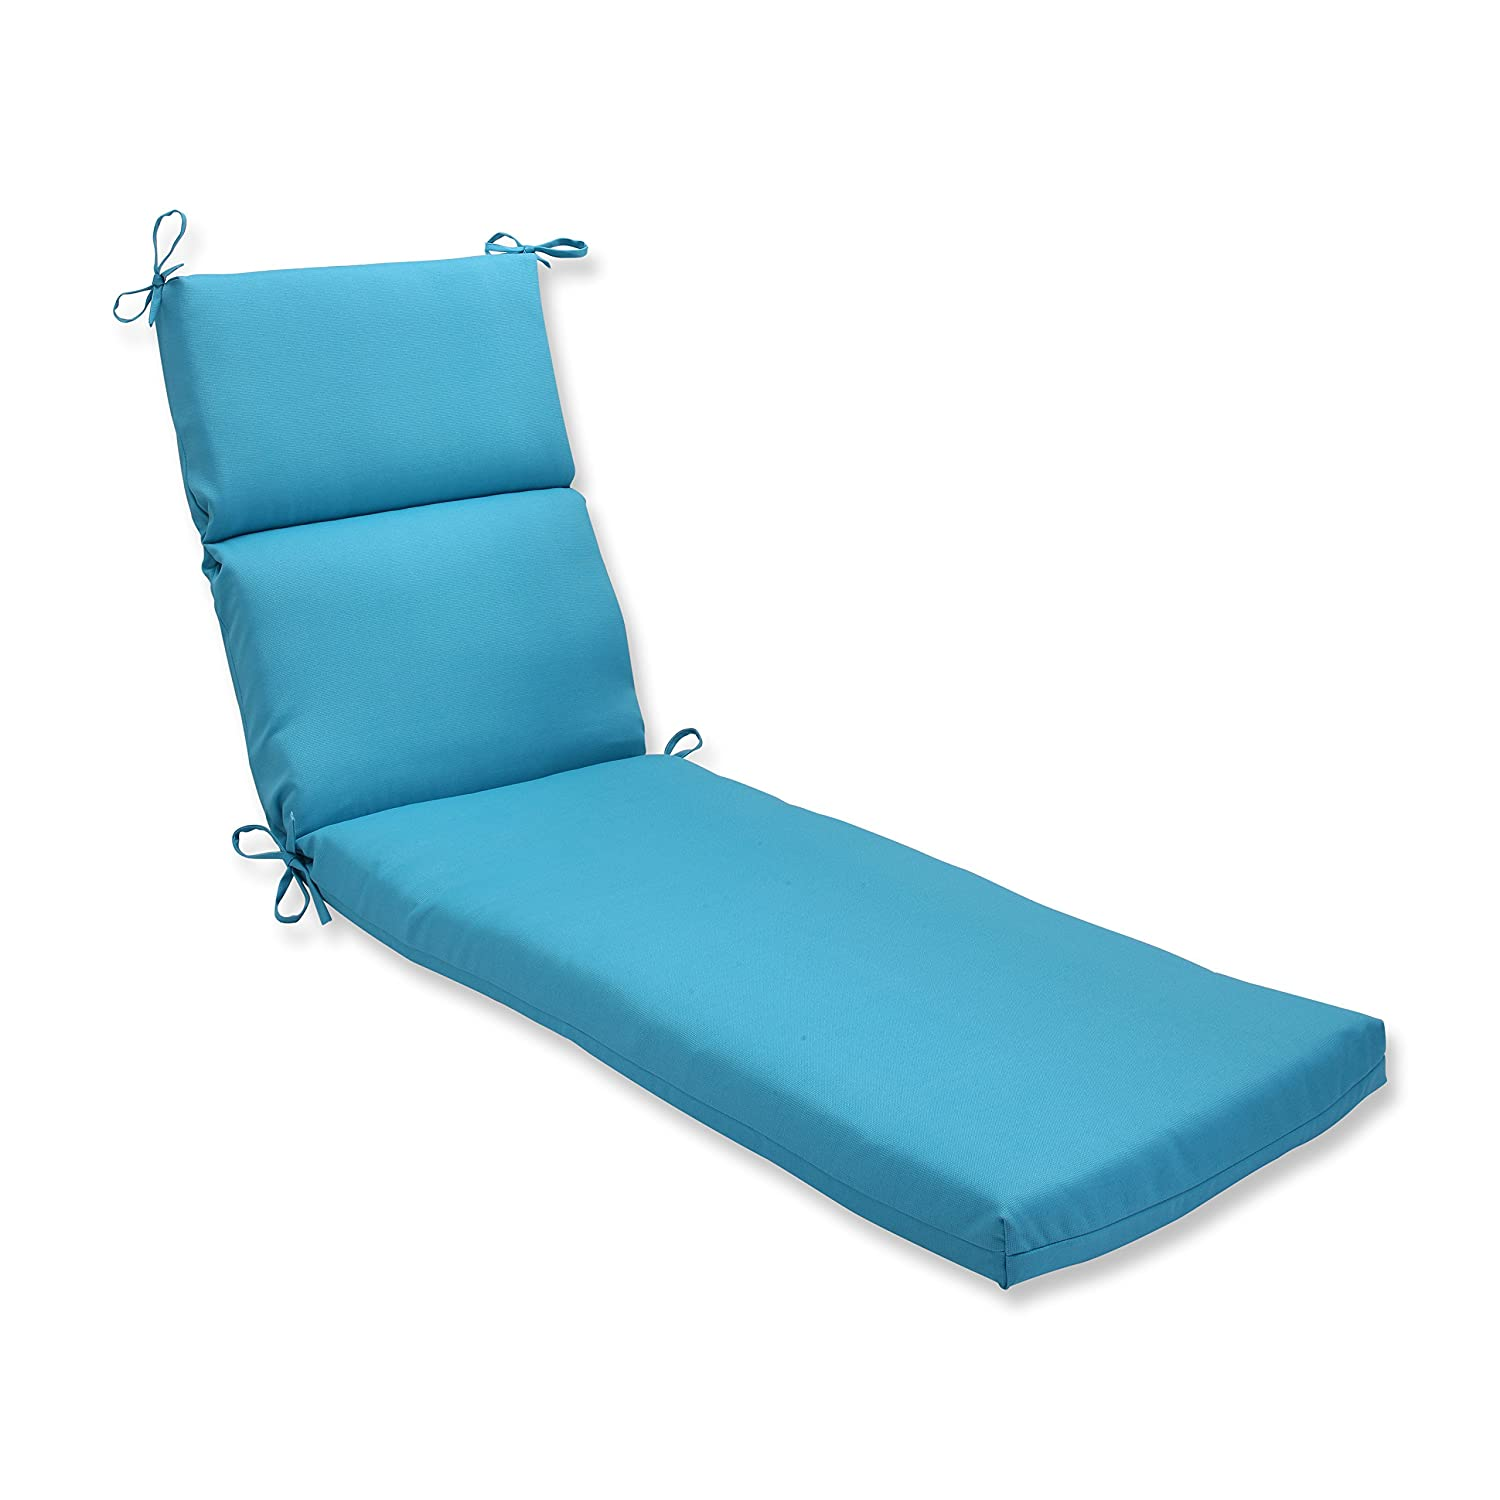 p sling lounges chaise padded belleville chair hampton bay outdoor lounge